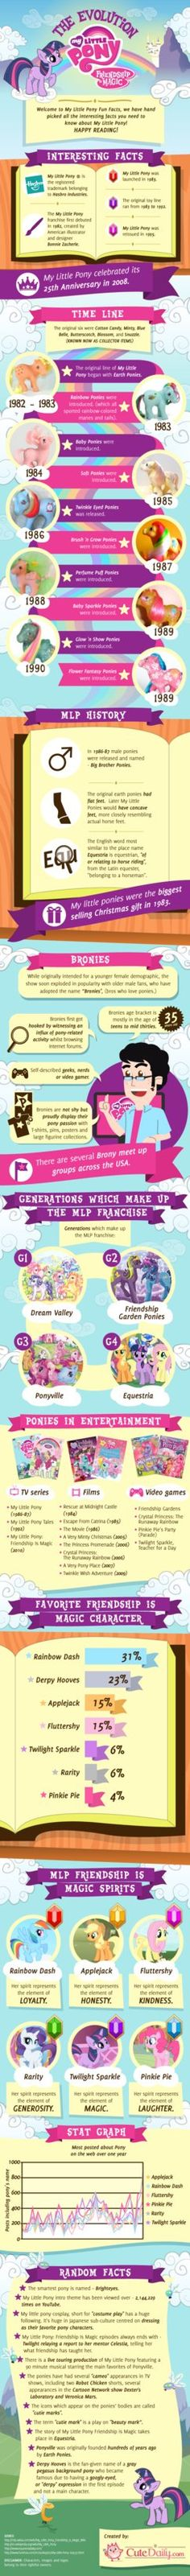 Everything you wanted to know about My Little Pony! Many more fun stuff coming, please visit Cute Daily Yes many people do not agree with the favorite pony section, but we tried our best. If you do...